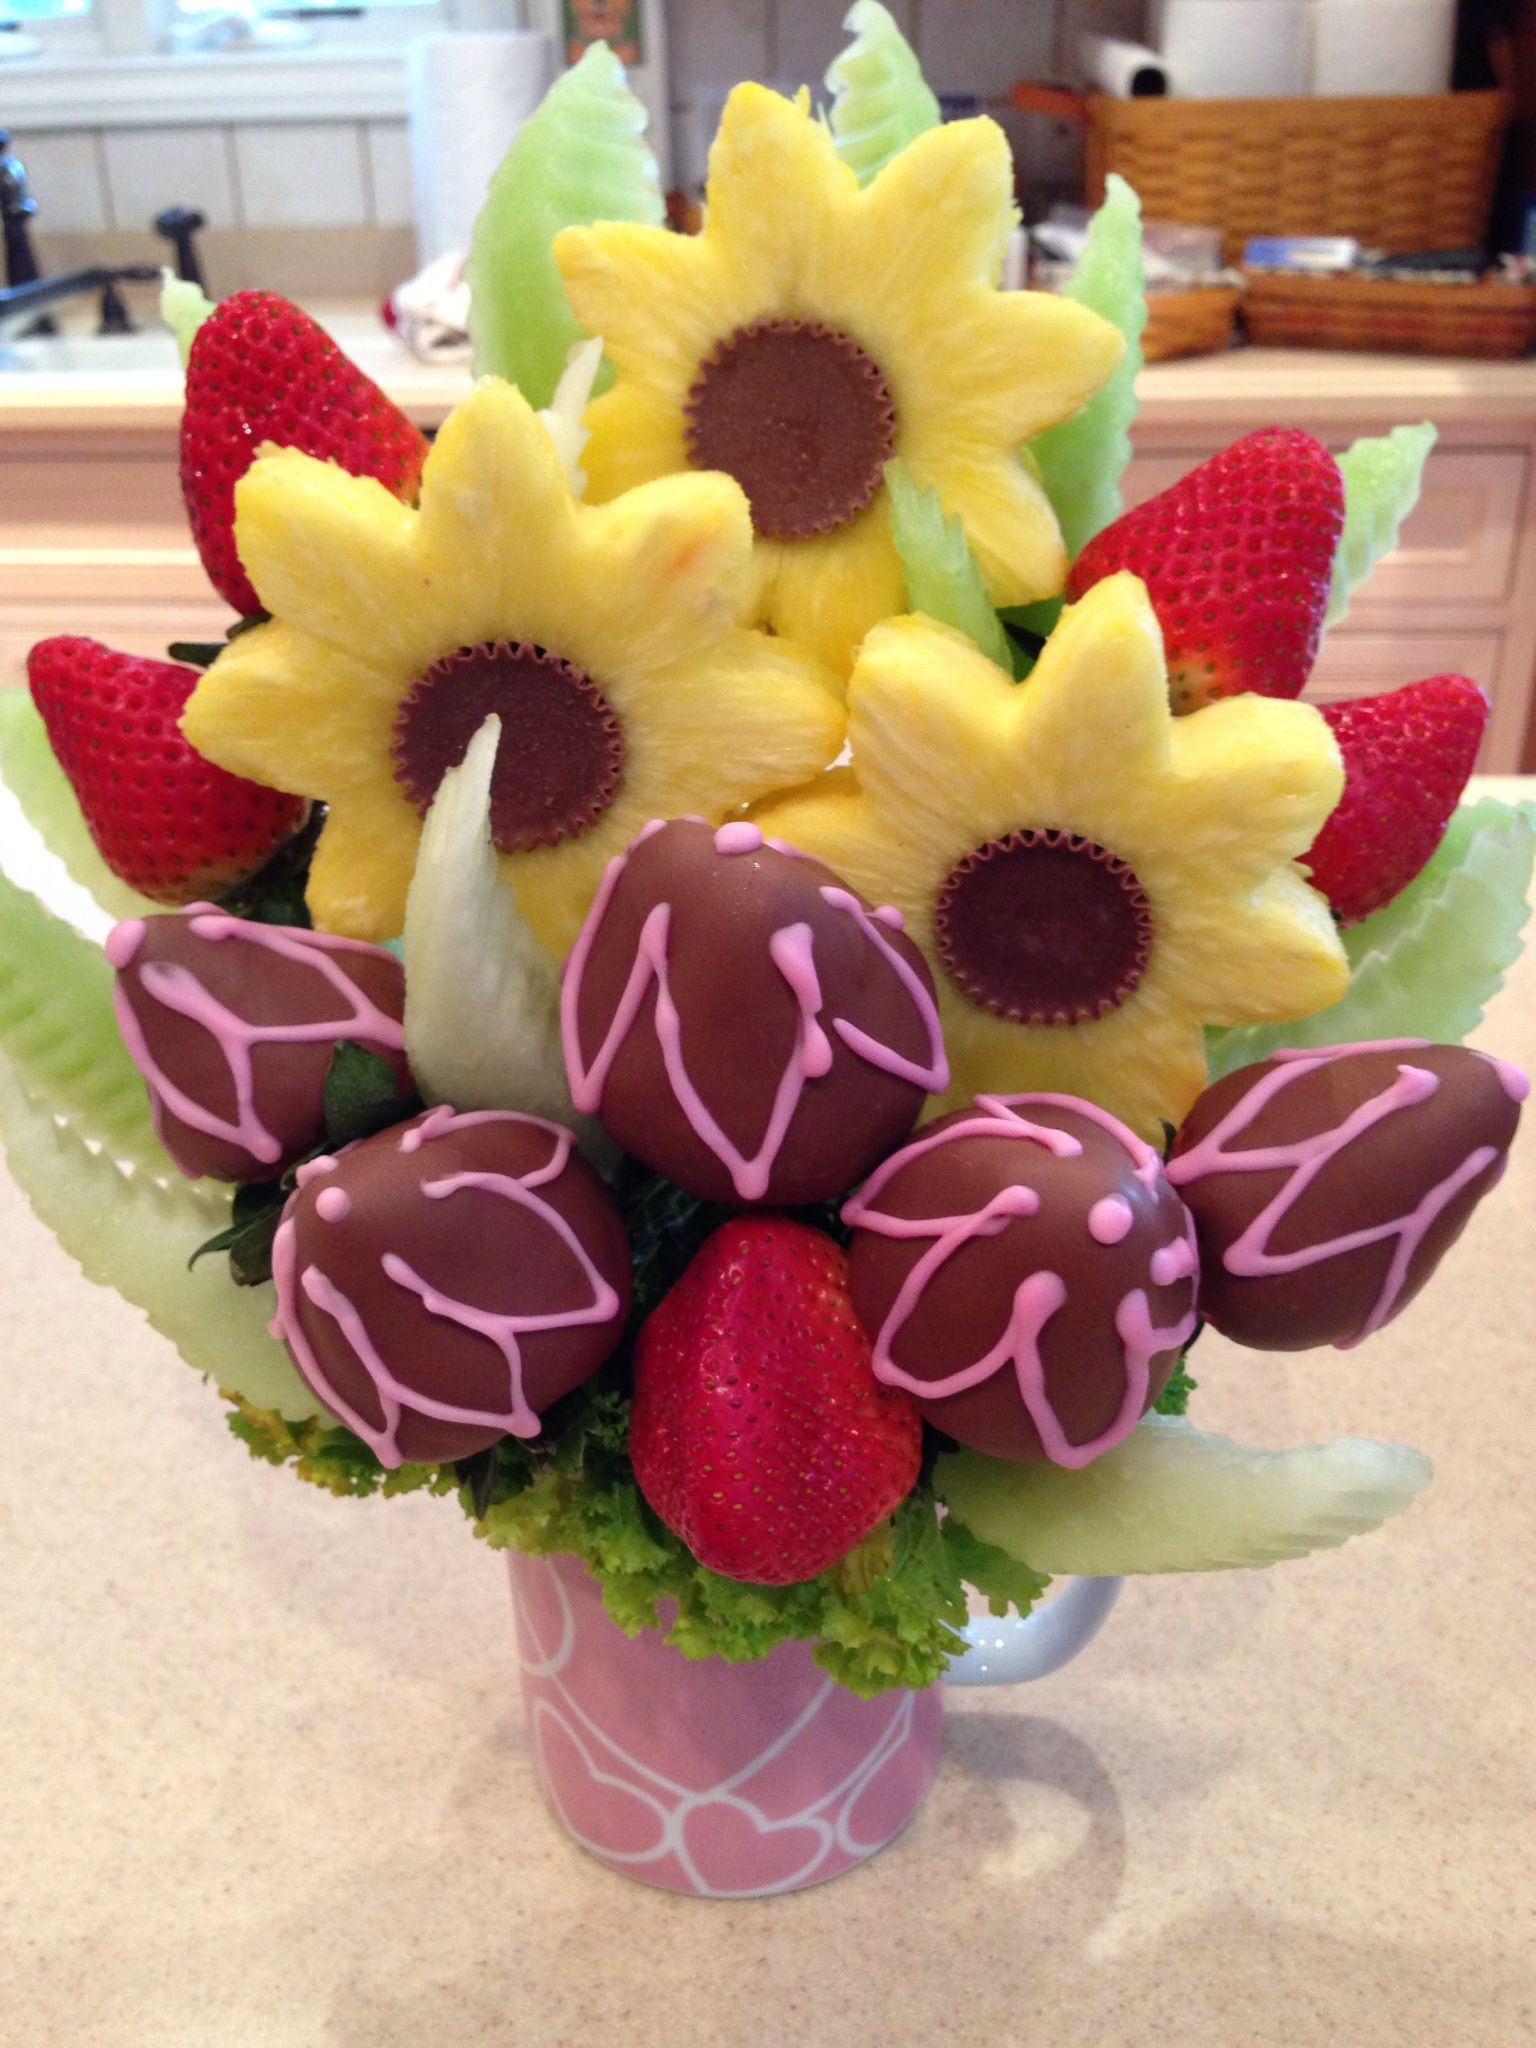 Pineapple Sunflowers Chocolate Dipped And Decorated Strawberries